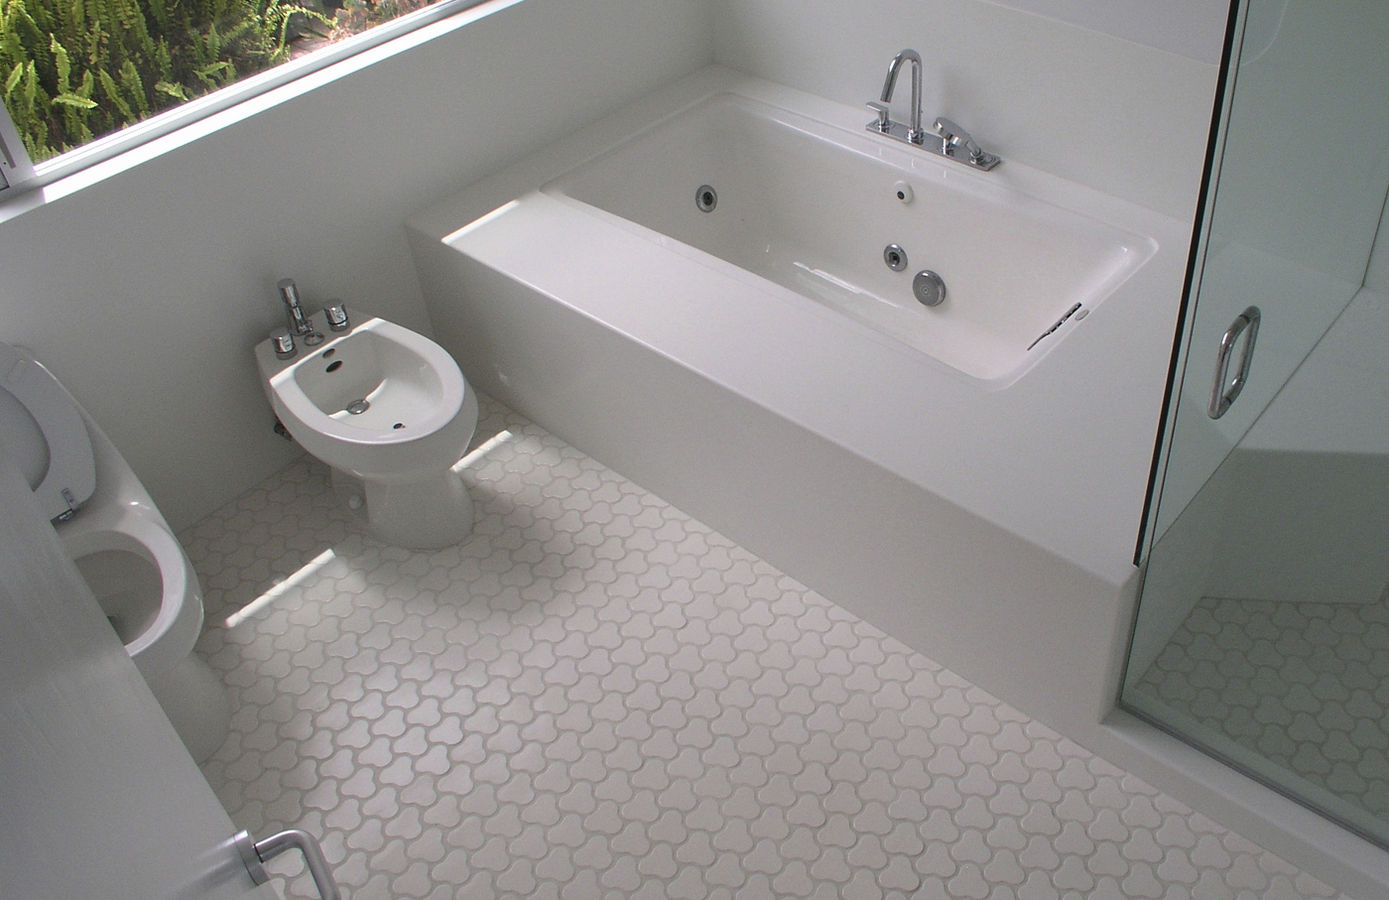 36 nice ideas and pictures of vintage bathroom tile design ideas